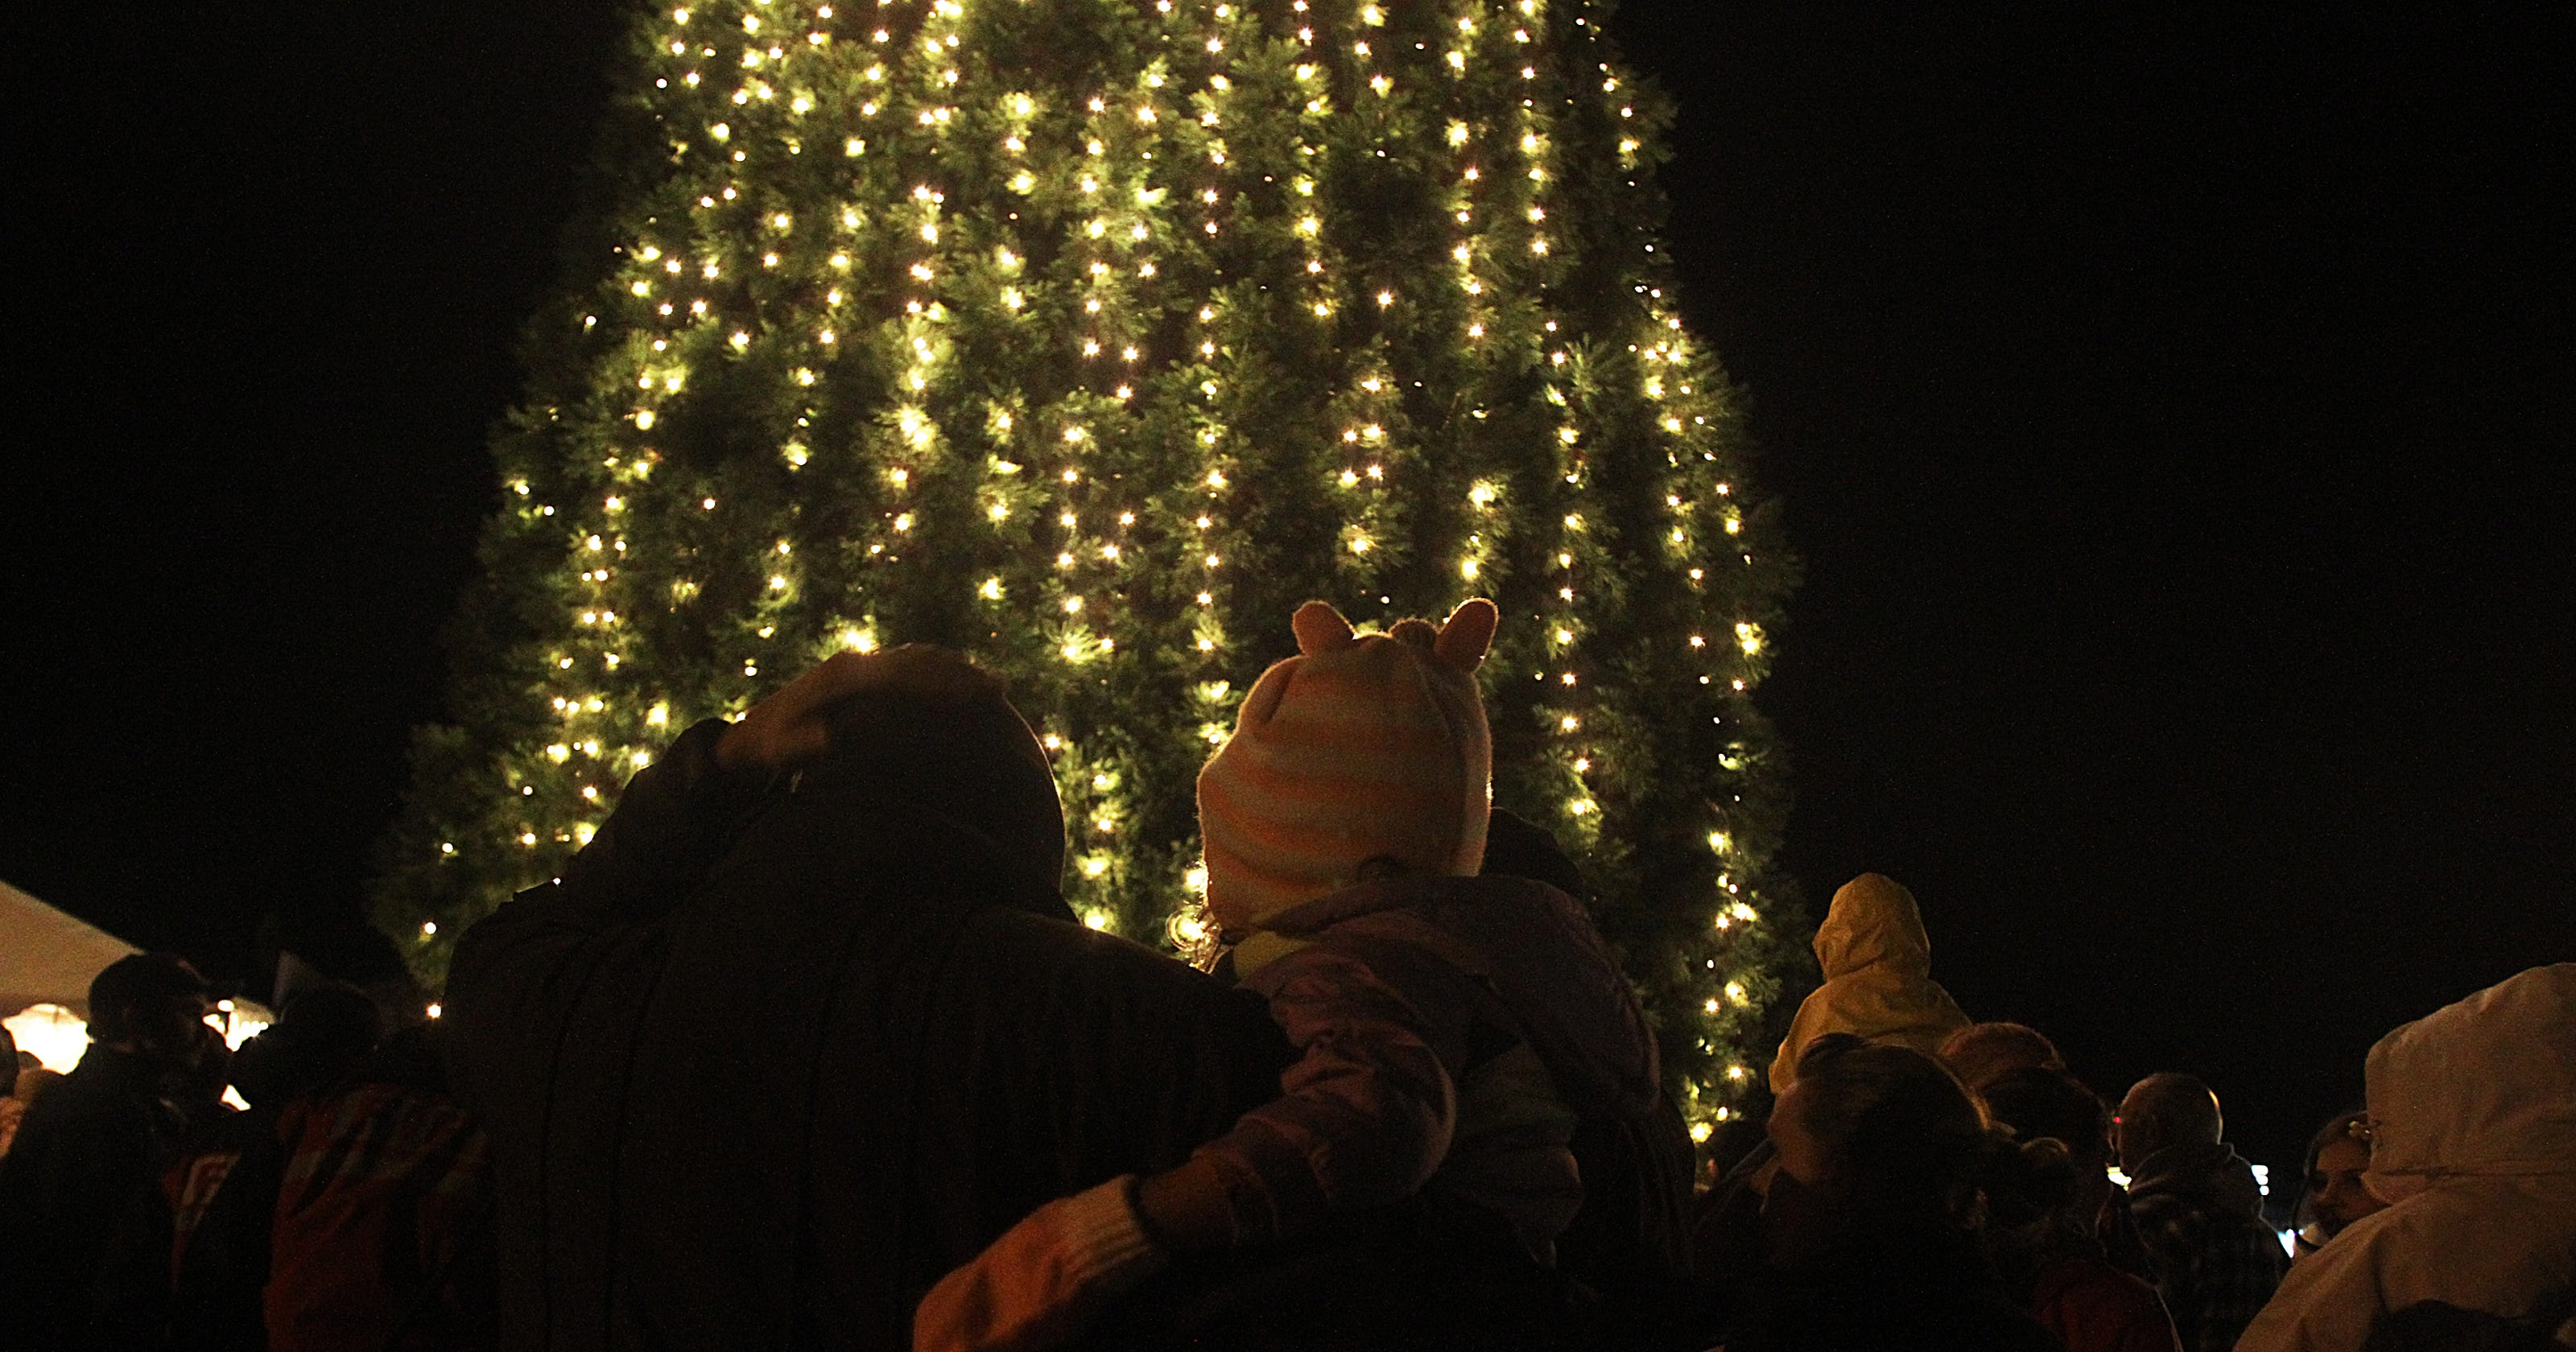 Local tree lightings and events